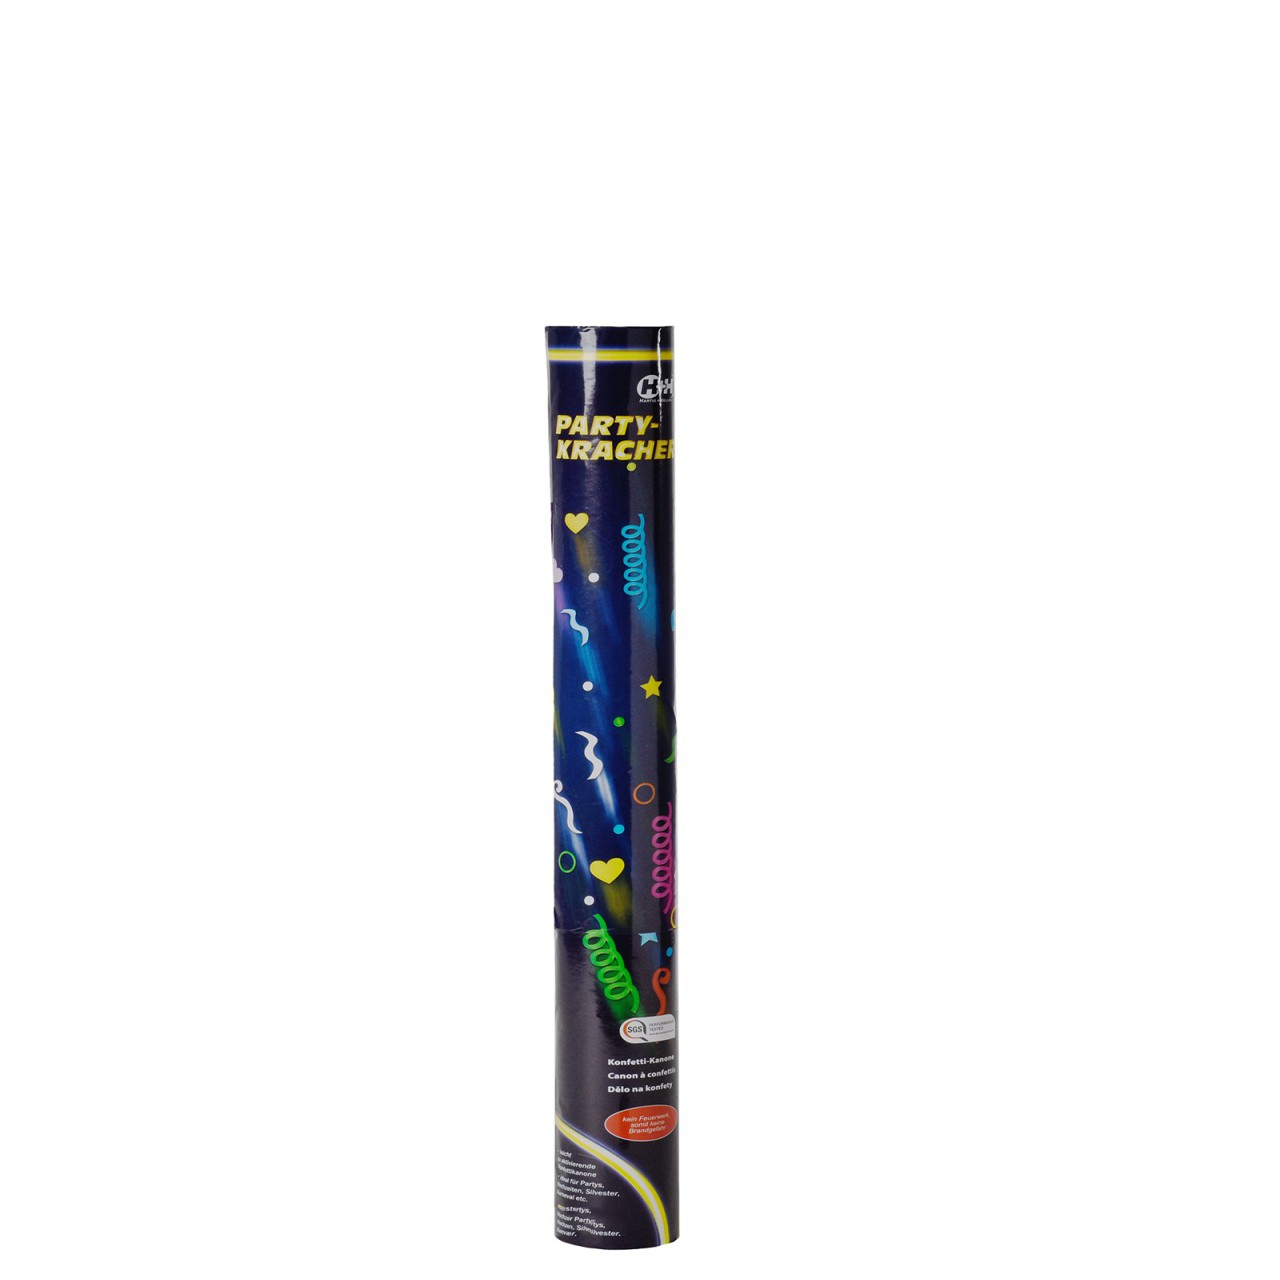 H+H PK 30 Confetti Cannon medium - 30g